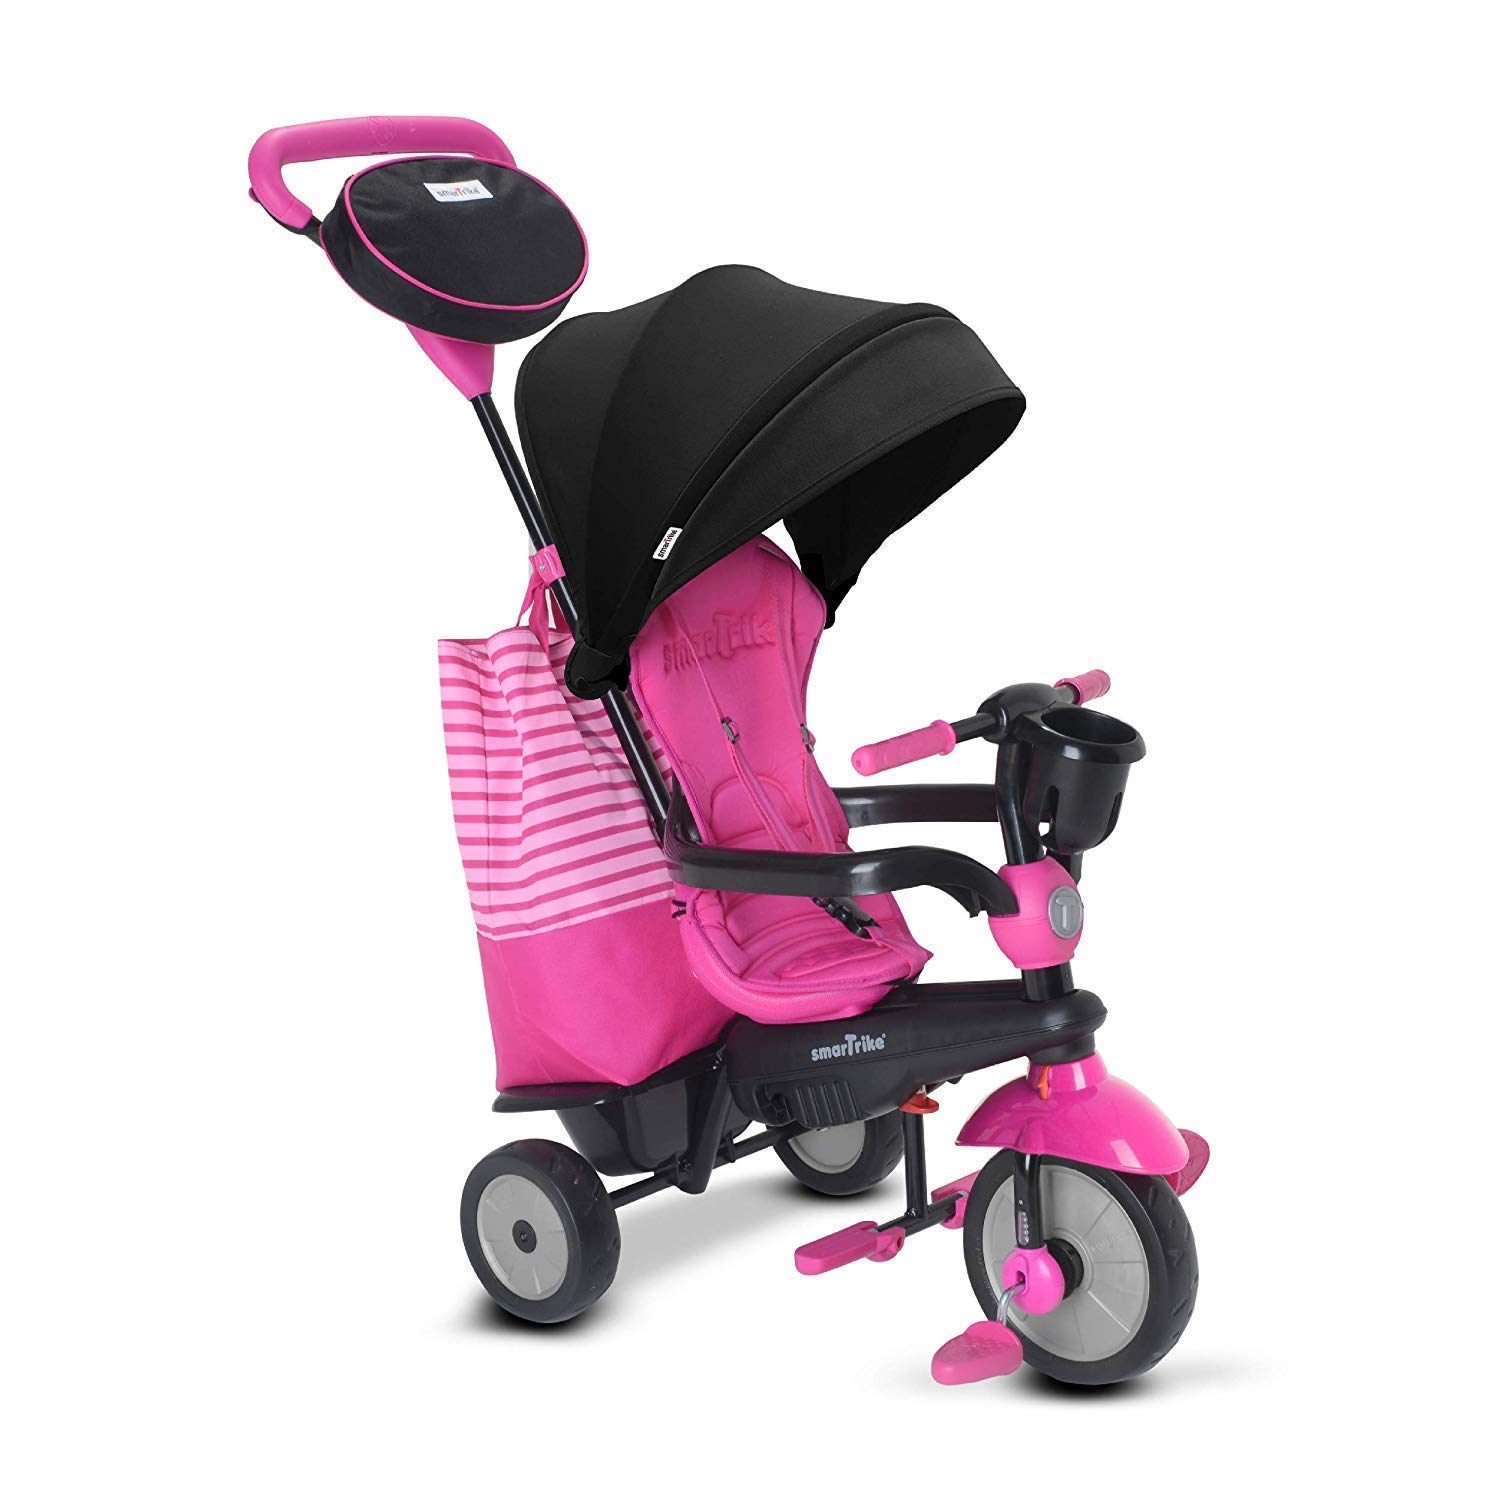 smarTrike Swing DLX Baby Tricycle, Pink